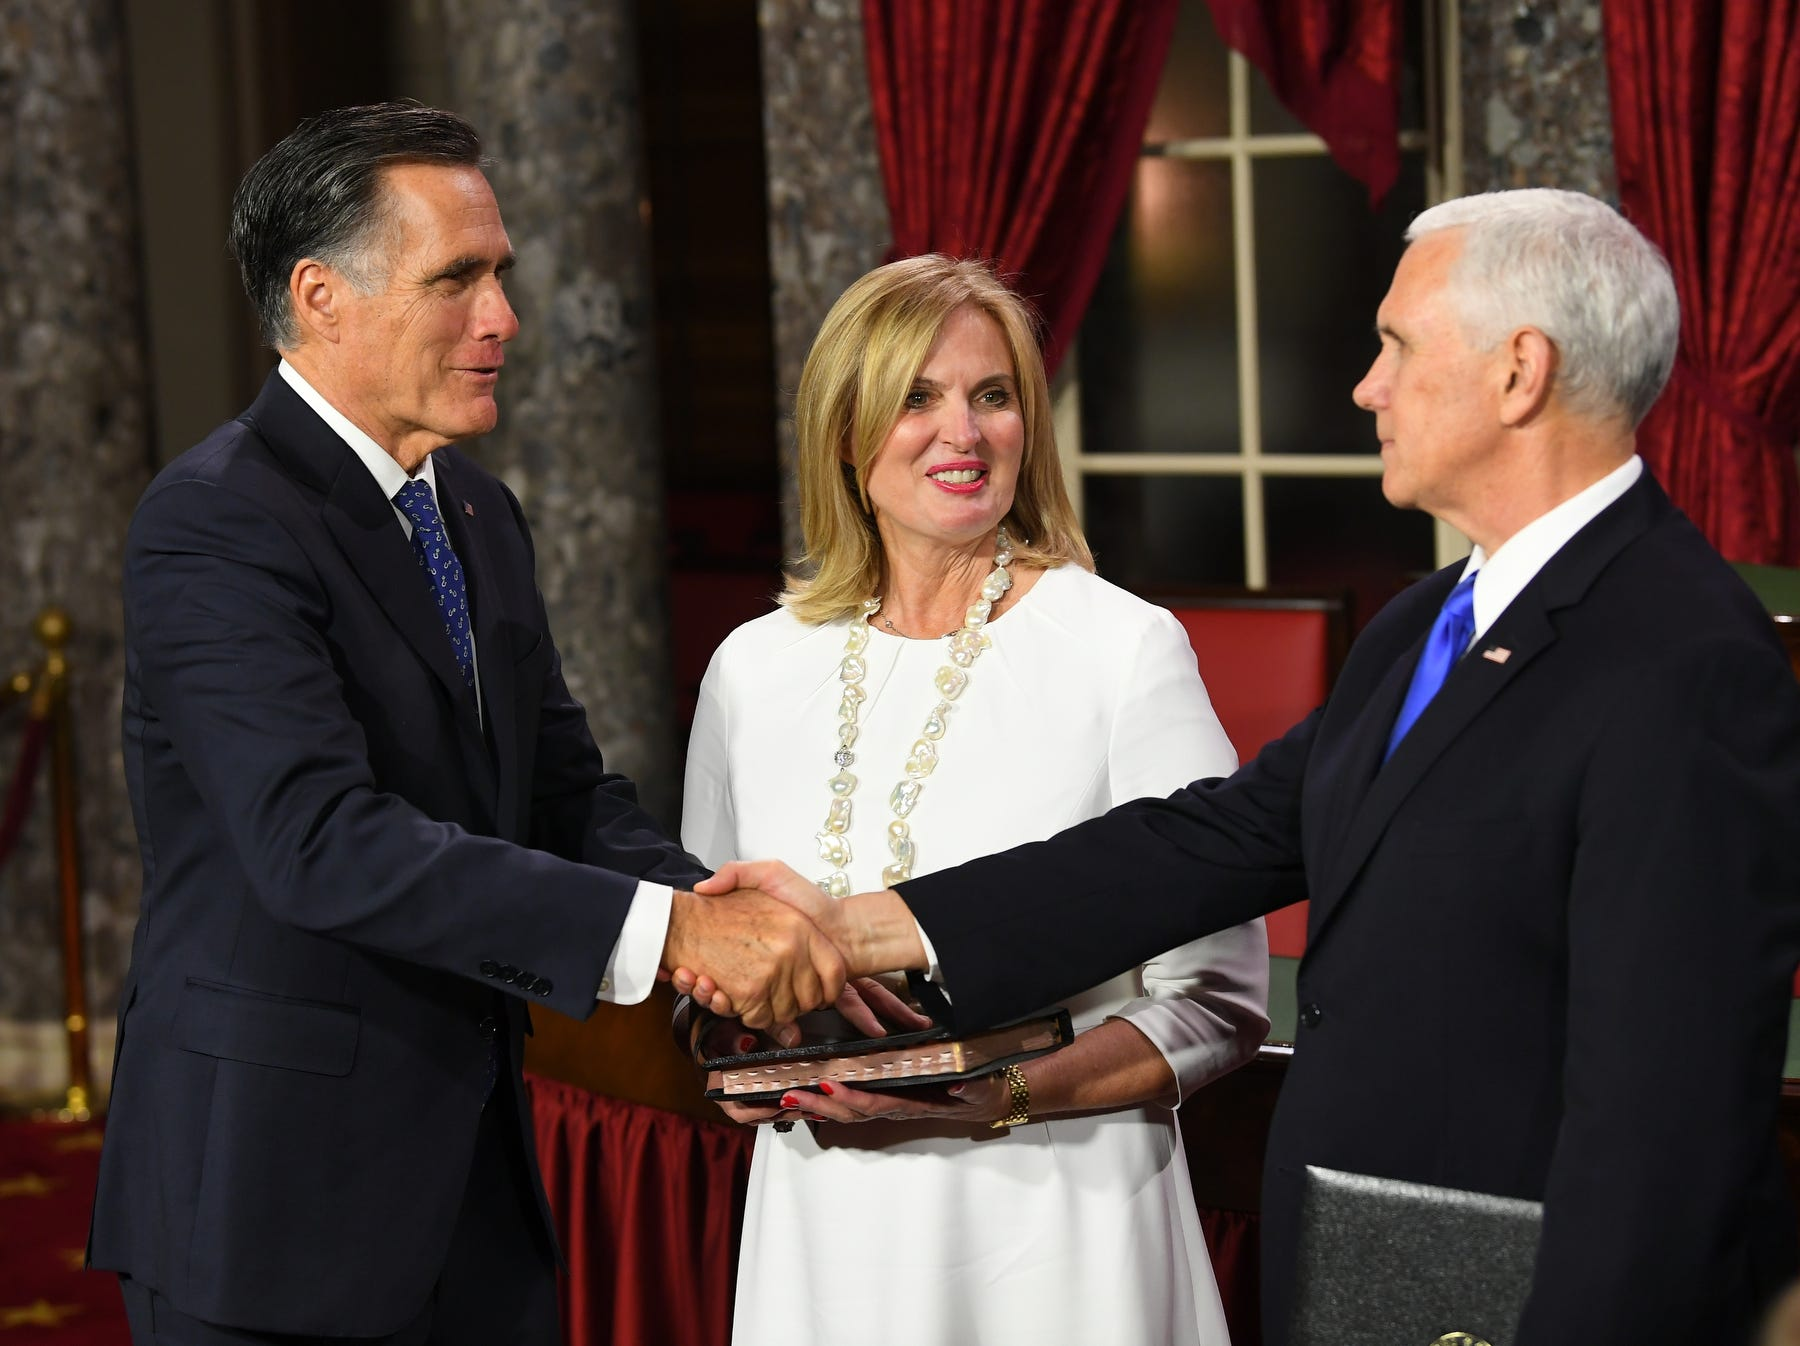 Senator Mitt Romney shakes the hand of Vice President Pence during his ceremonial swearing in as wife Ann Romney looks on.